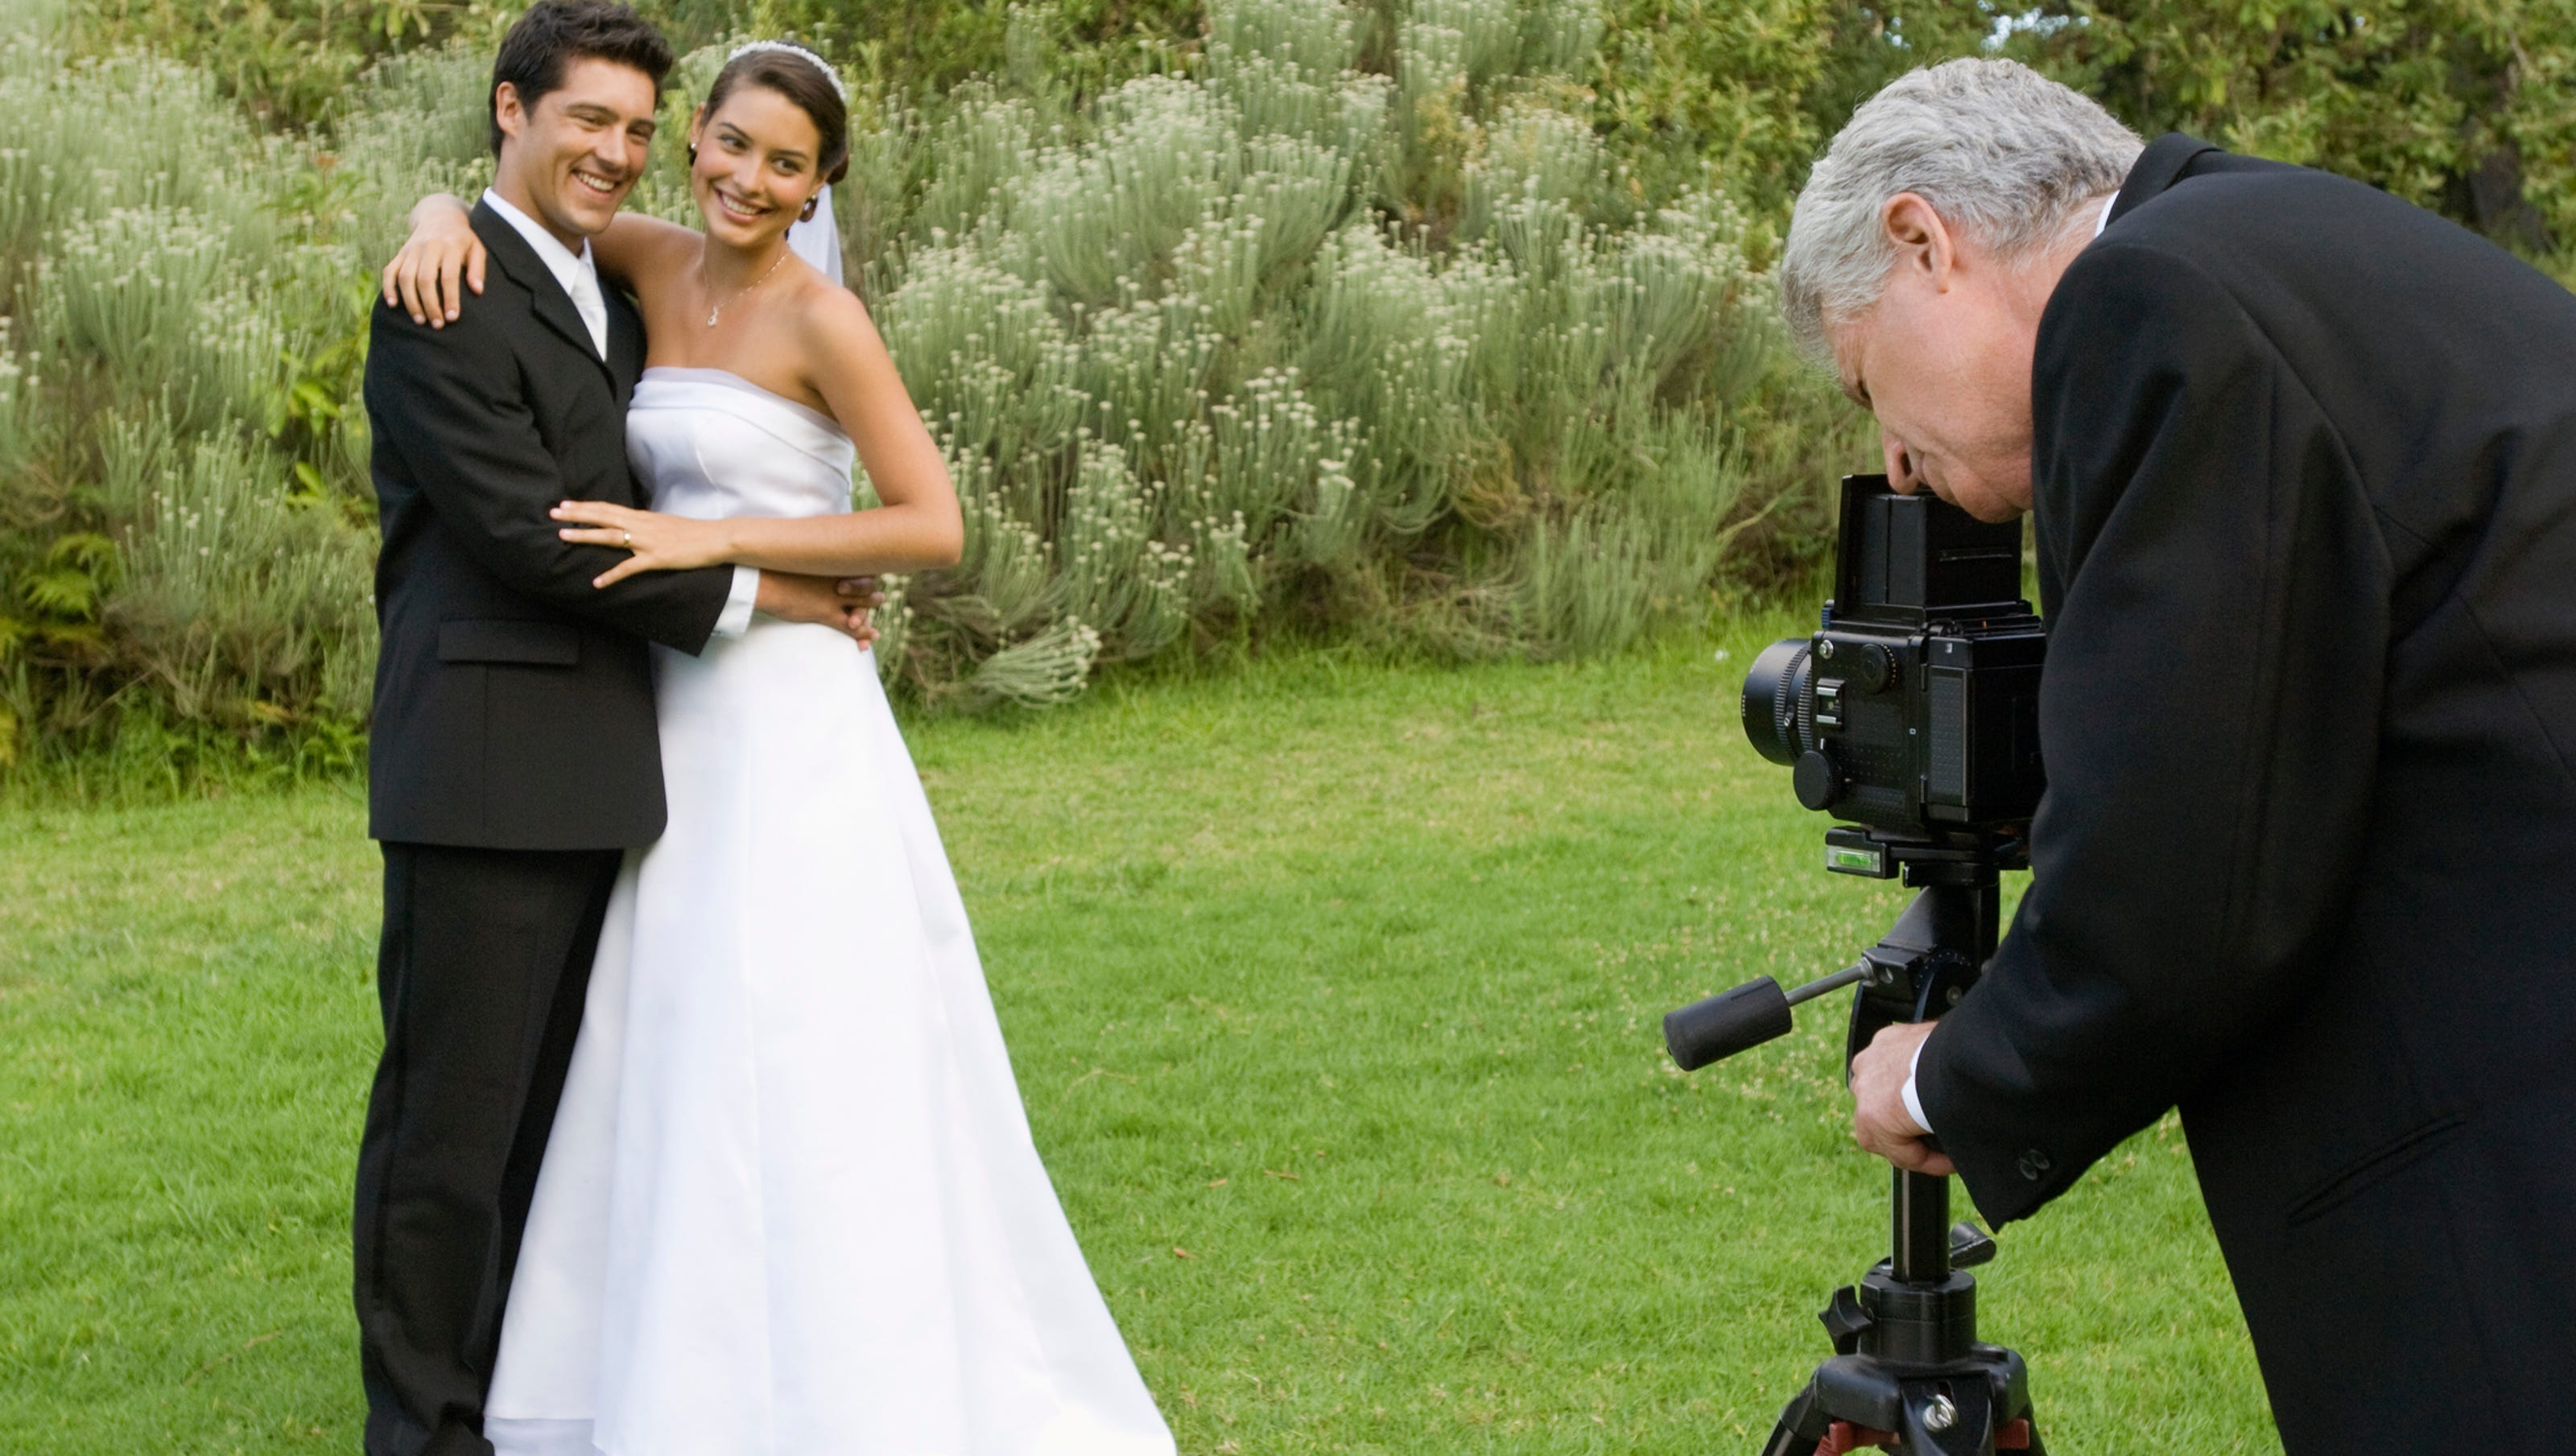 The I Do S And Don Ts When It Comes To Hiring A Wedding Photographer